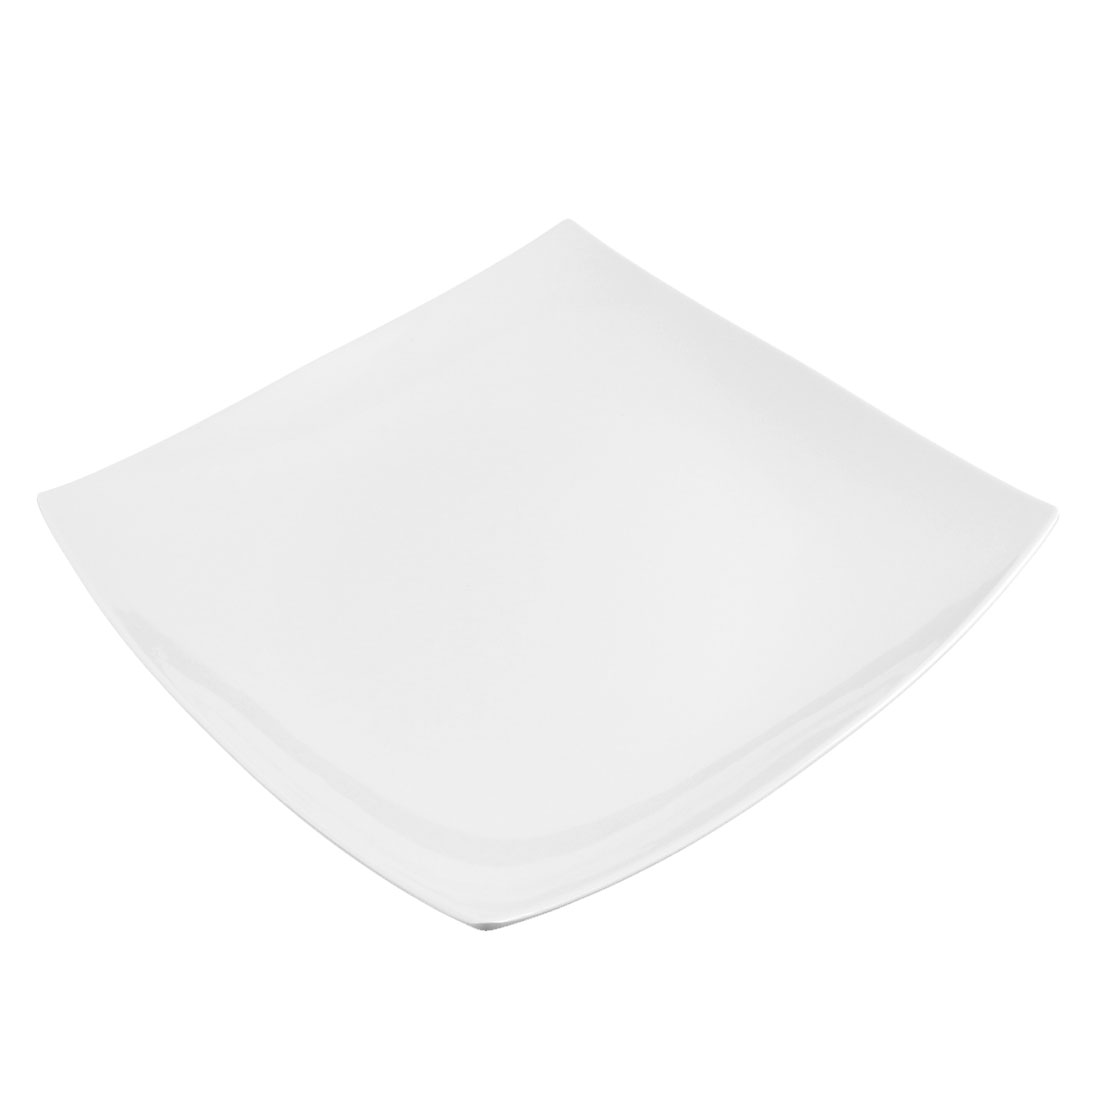 Kitchen Tableware Plastic Square Shaped Steak Food Dish Plate 10.5""